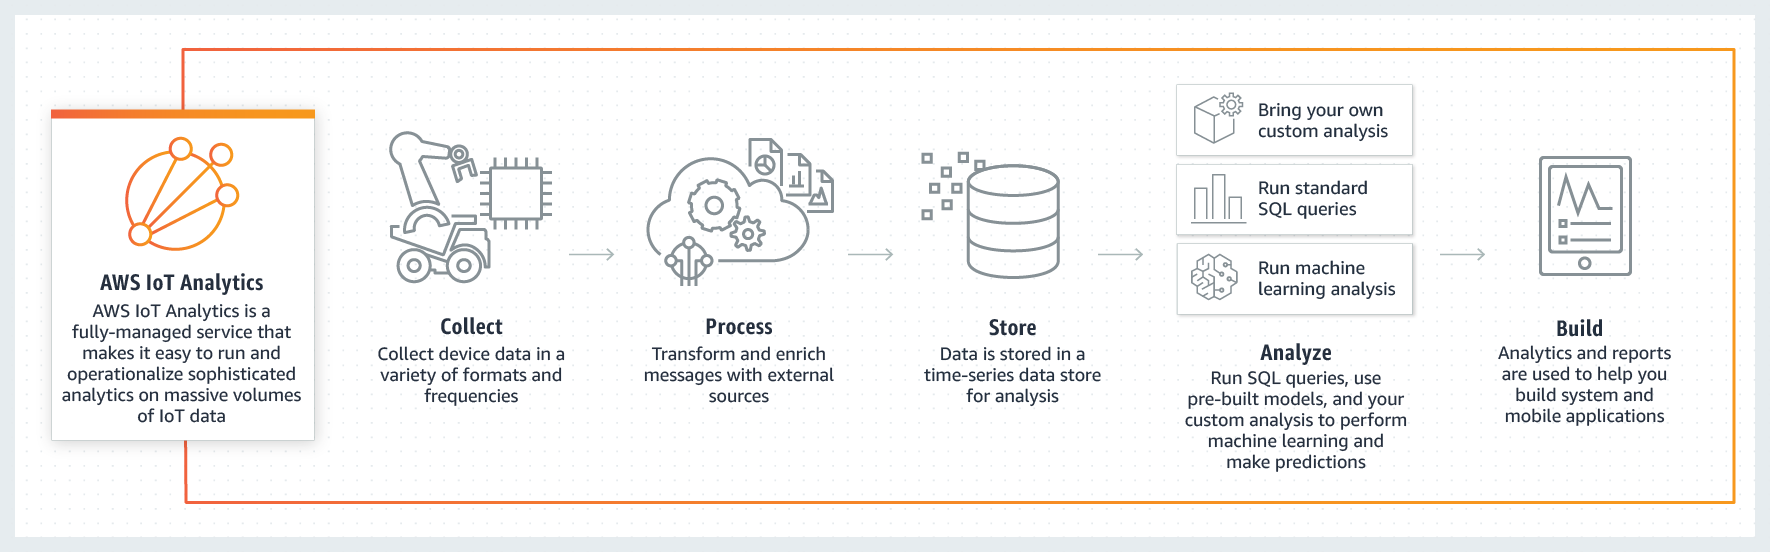 Fonctionnement d'AWS IoT Analytics